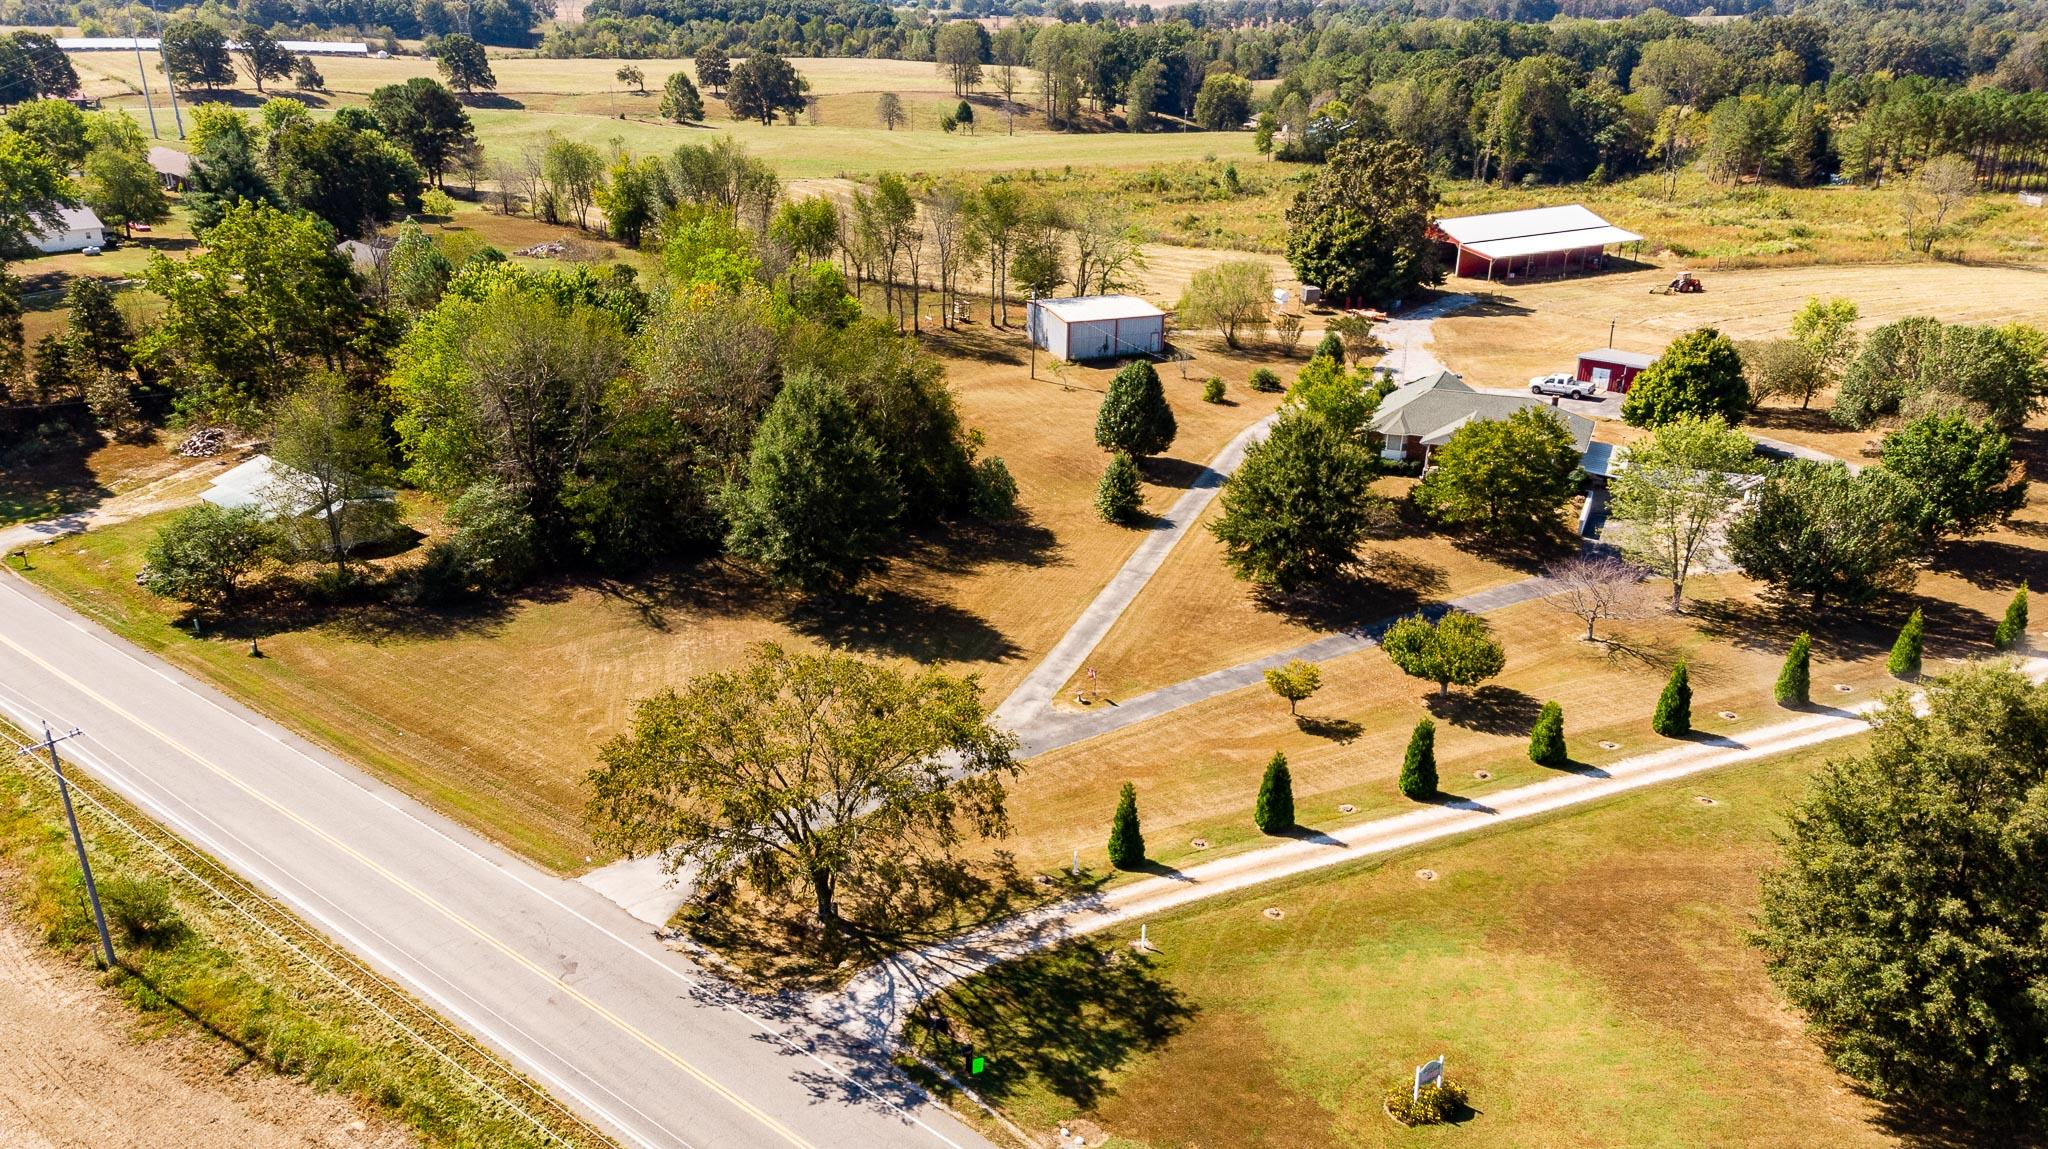 311 Rabbit Trail Rd, Leoma, TN 38468 - Leoma, TN real estate listing